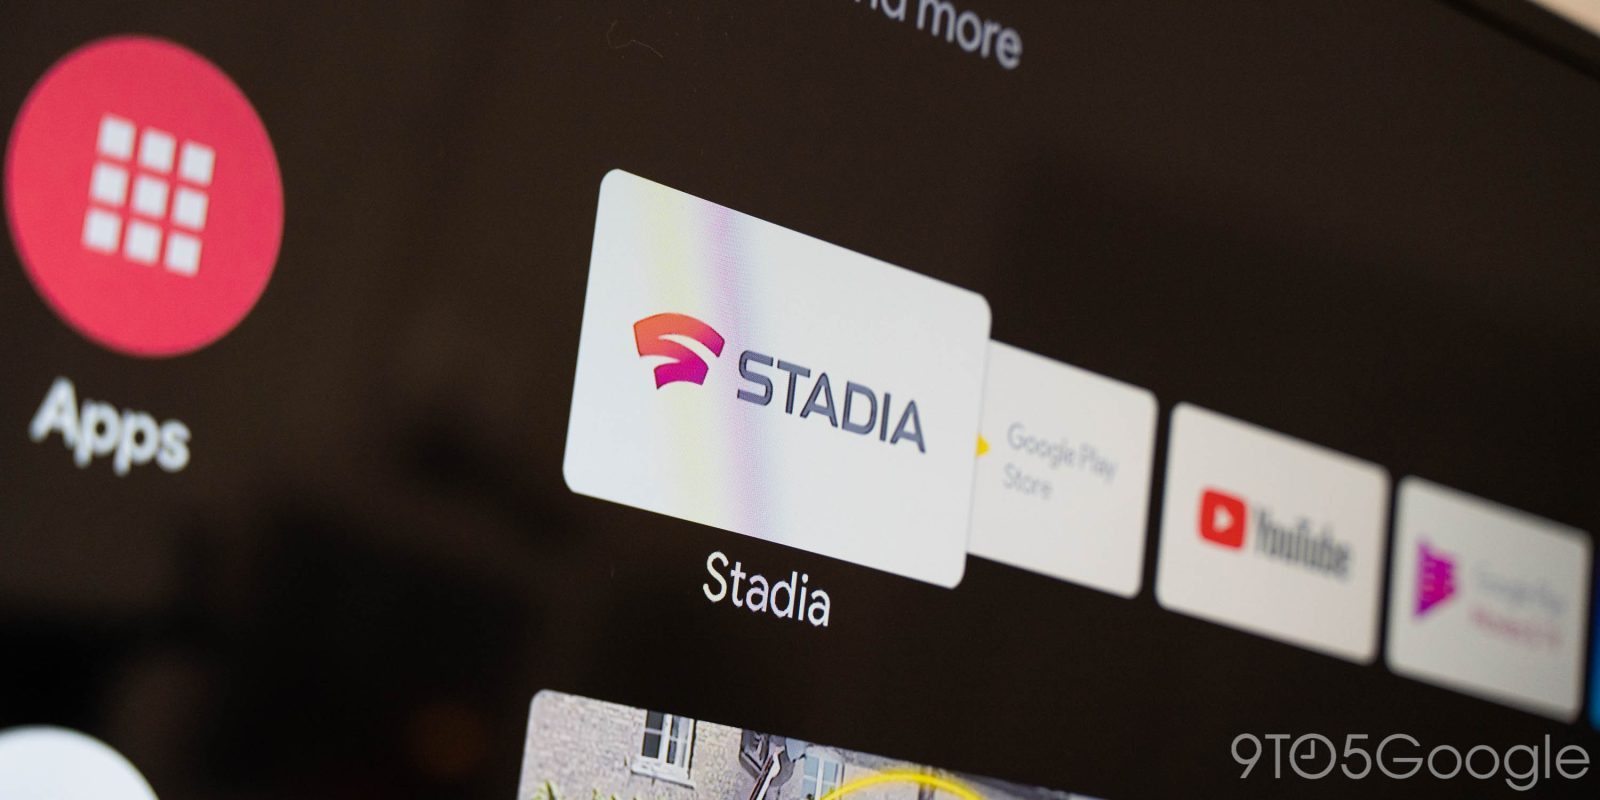 Google Stadia enables Android TV support [Video] - 9to5Google